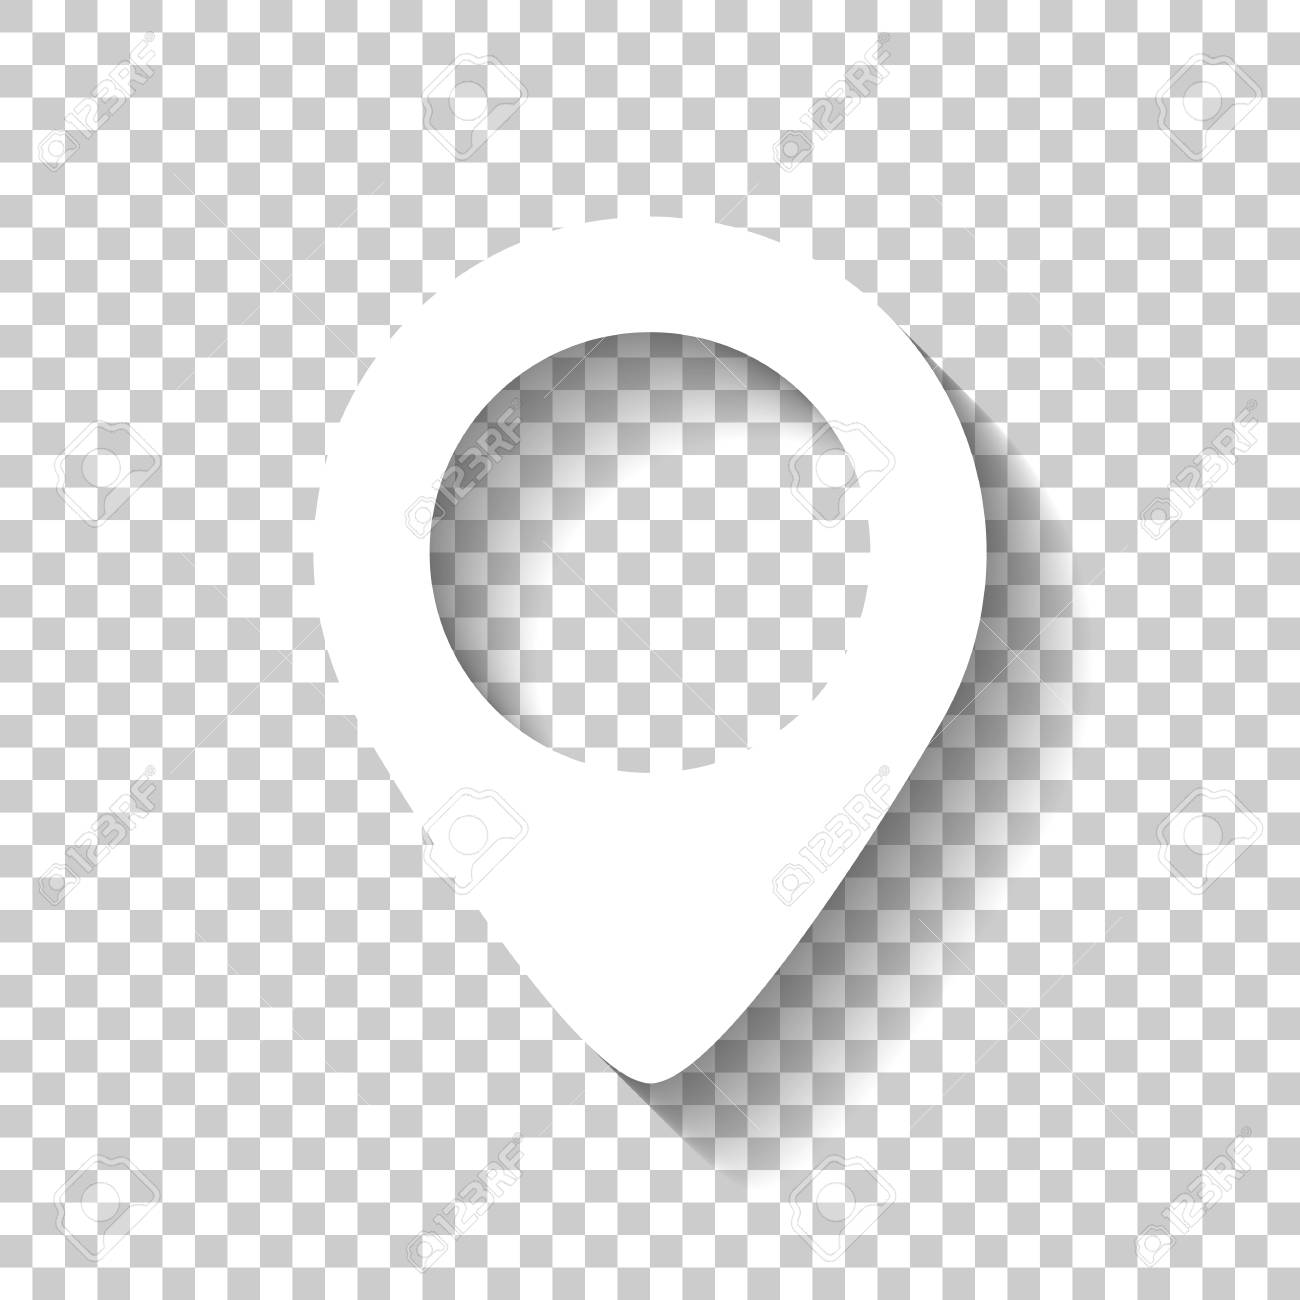 map label icon  White icon with shadow on transparent background